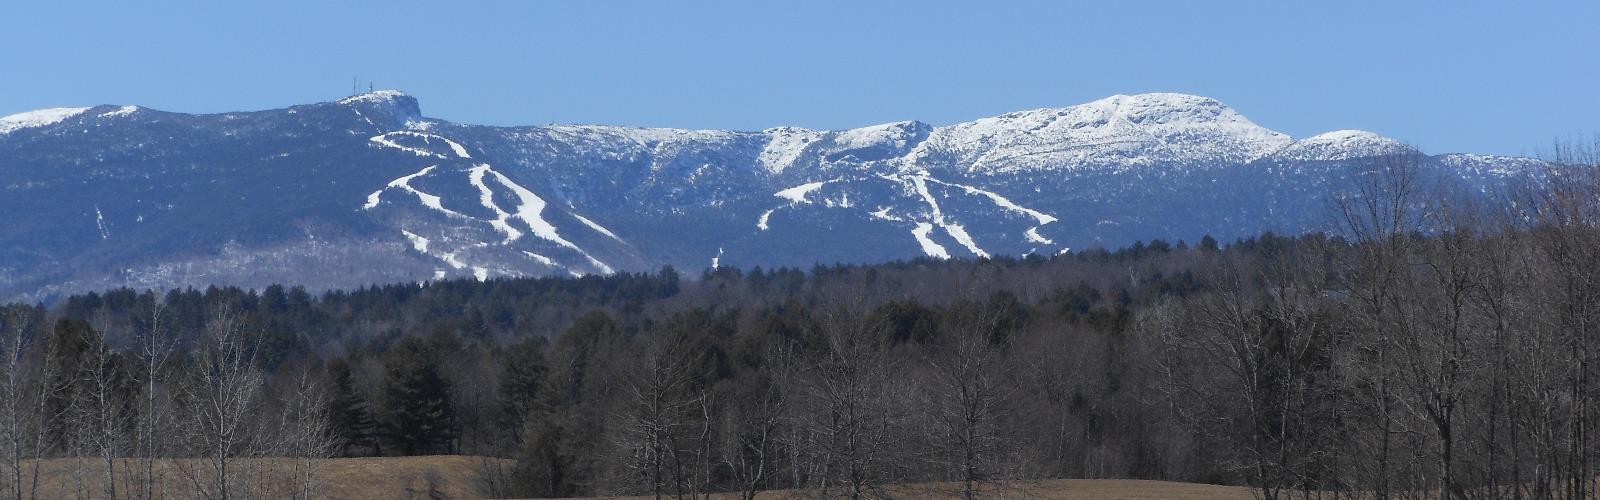 Mount Mansfield-The Nose, Vermont - Hiking